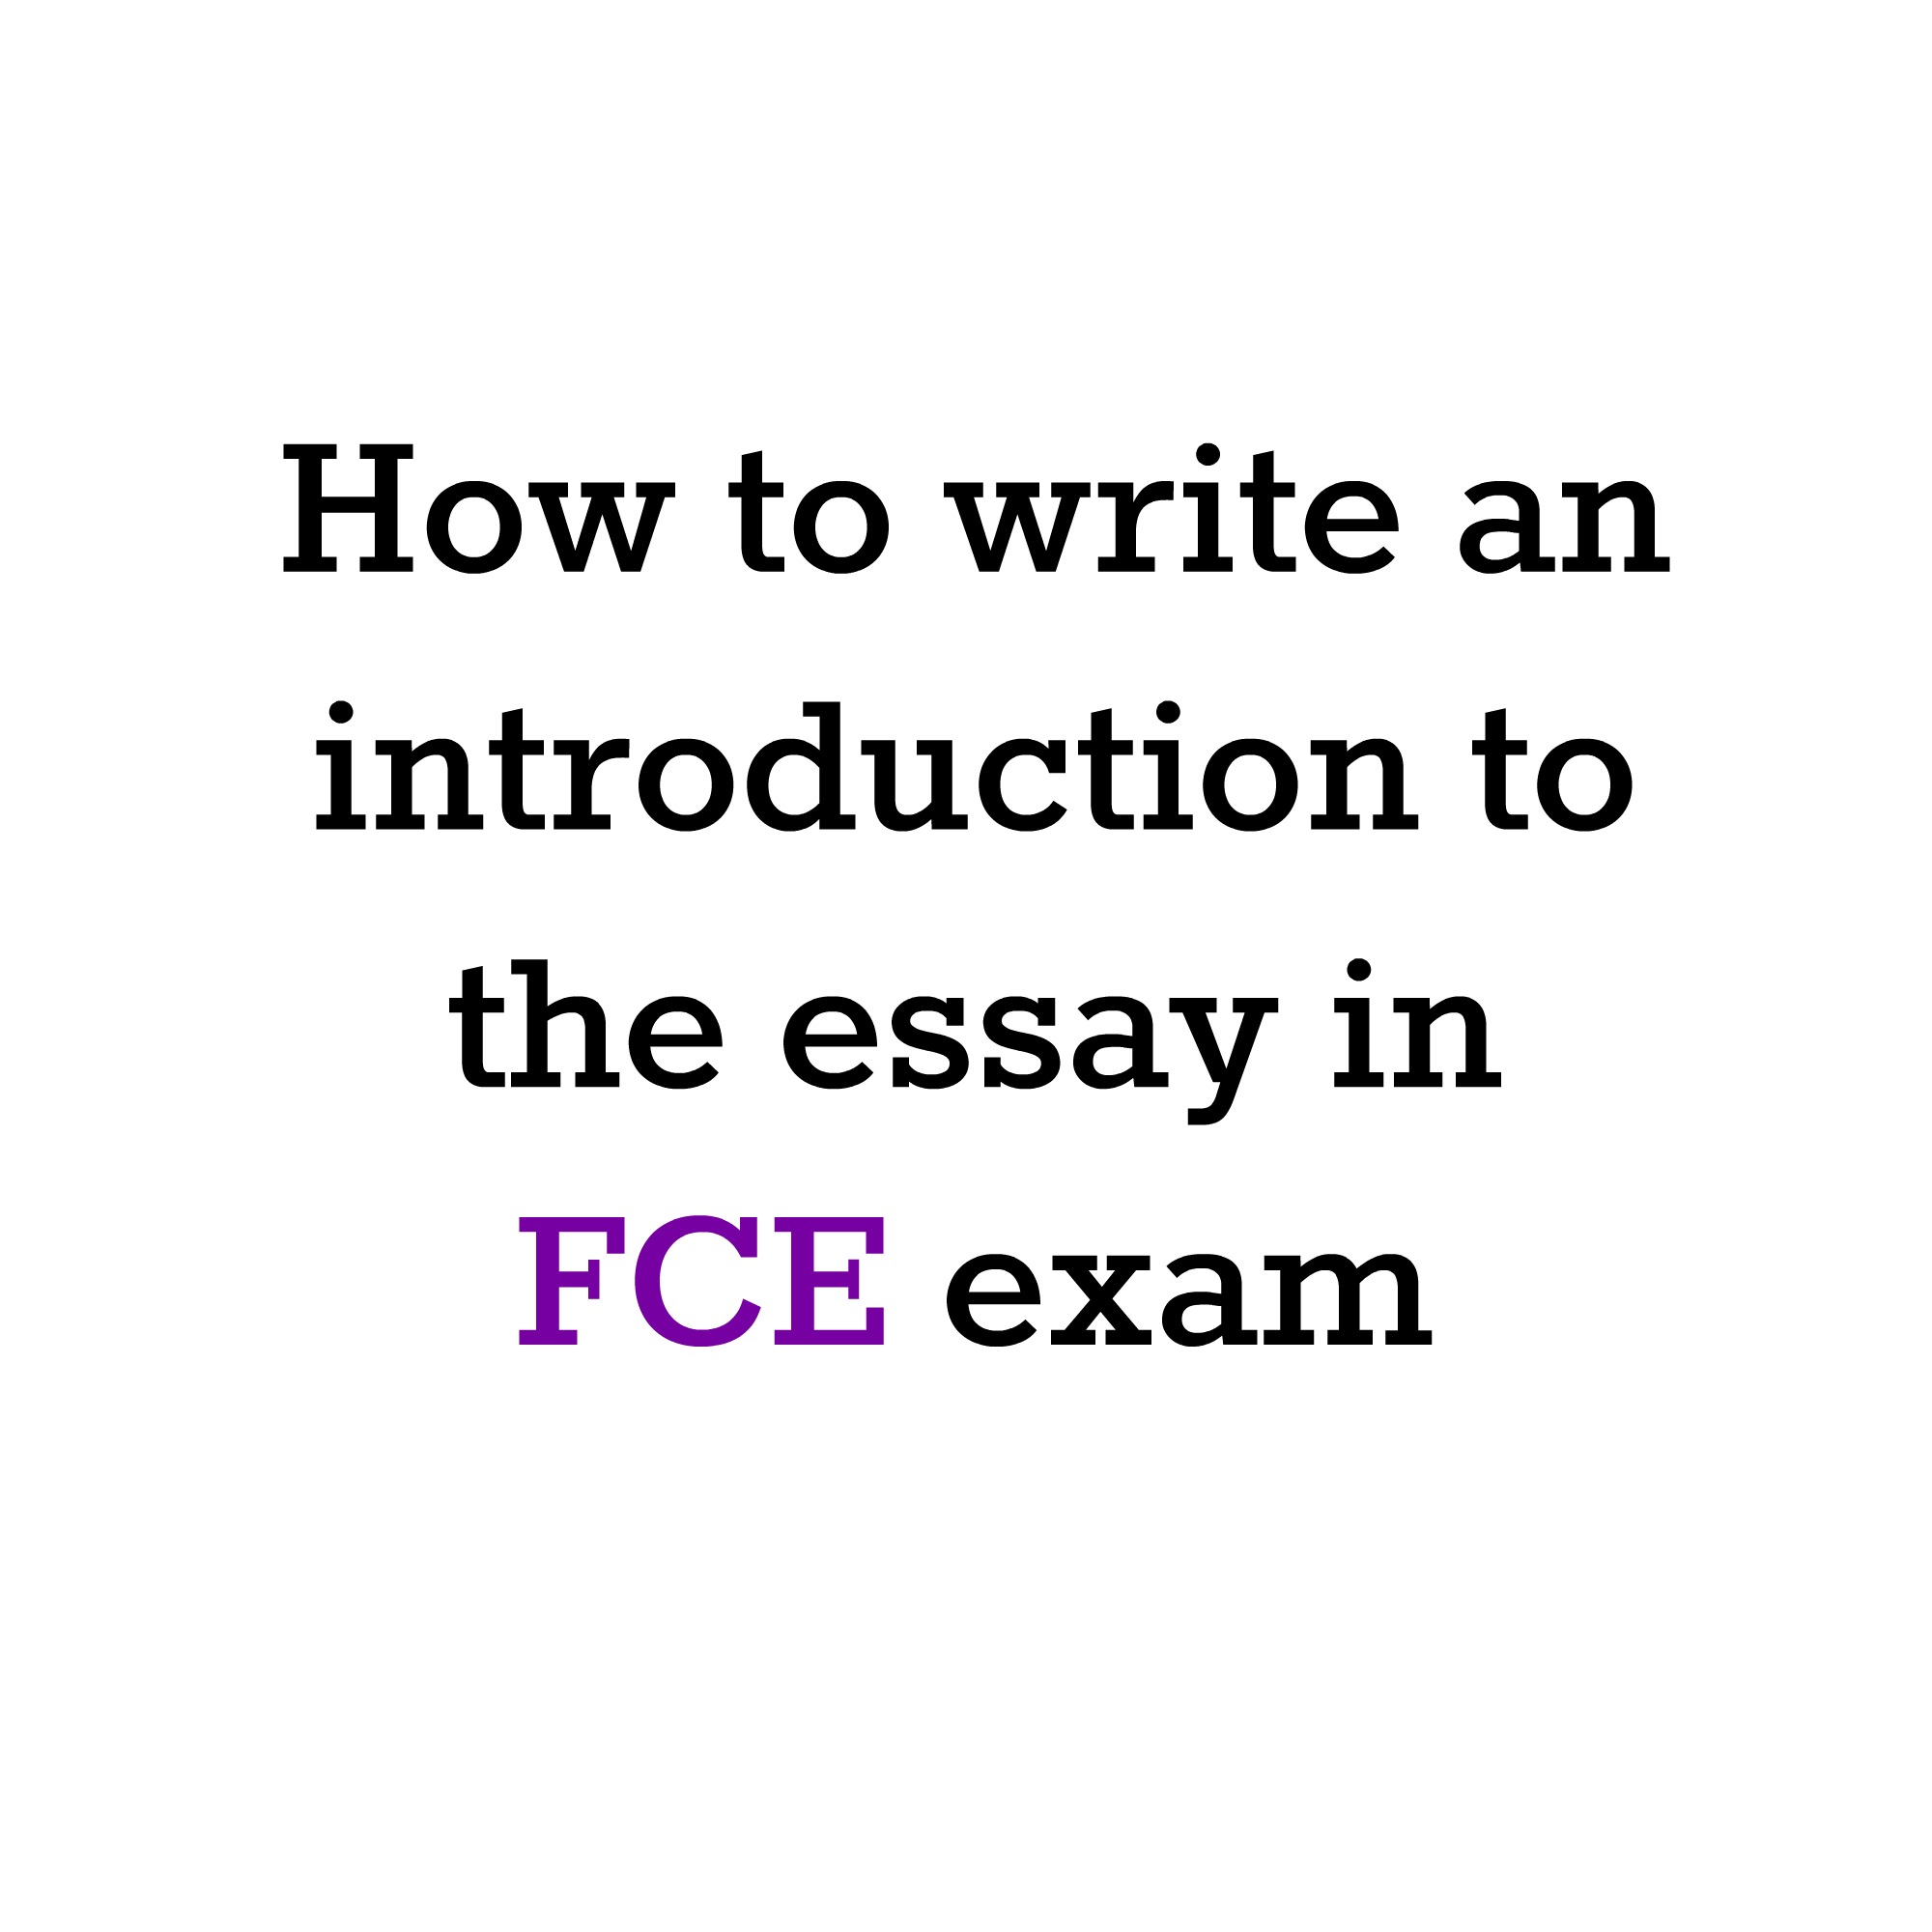 example of how to write an introduction of an essay